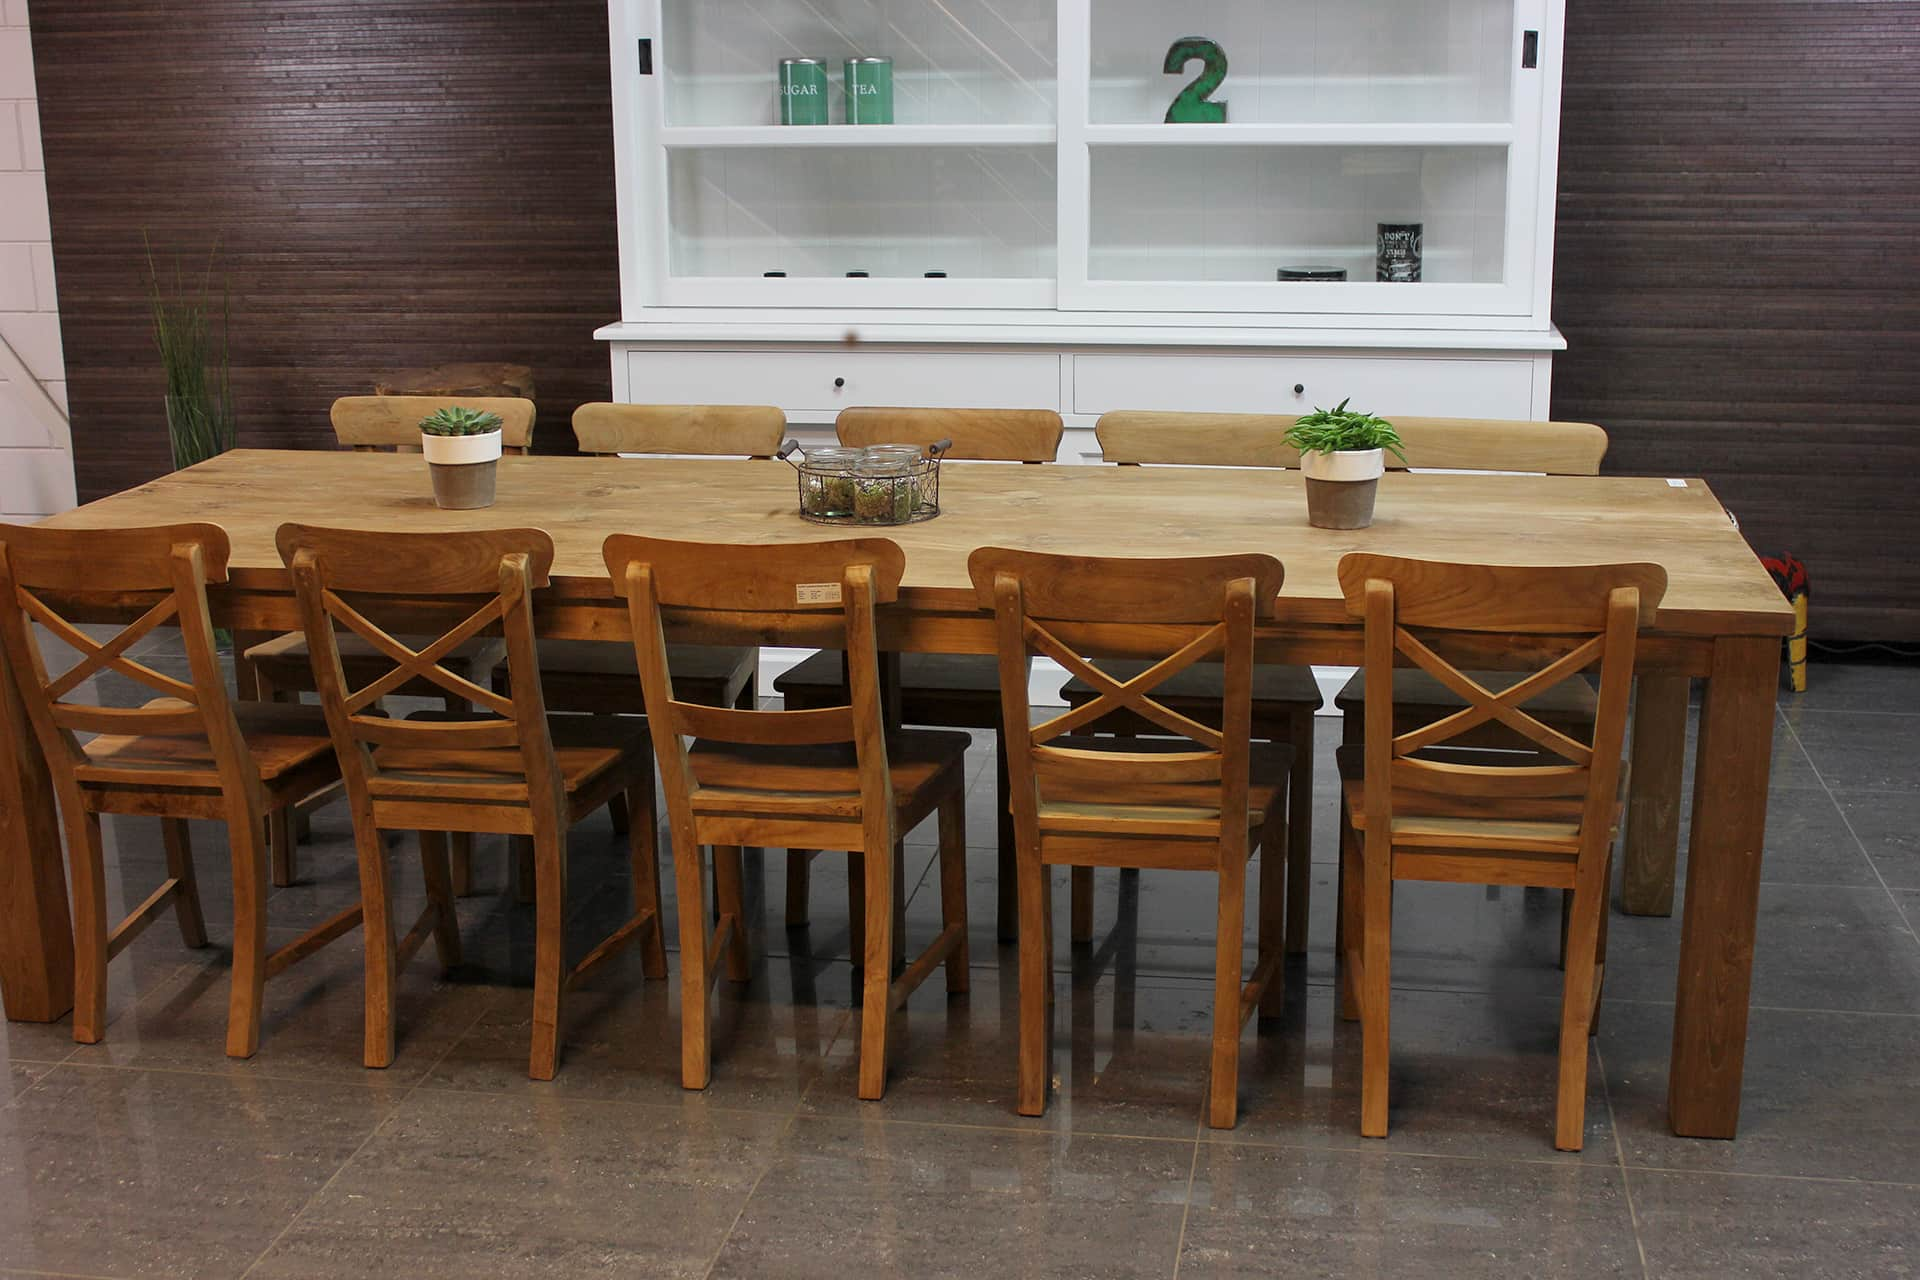 Teak Ketang T280D | modern smooth dining table teak, thick top (4cm) in smooth untreated teak. Solid teak dining table, quality from Indonesia - TEAK2.